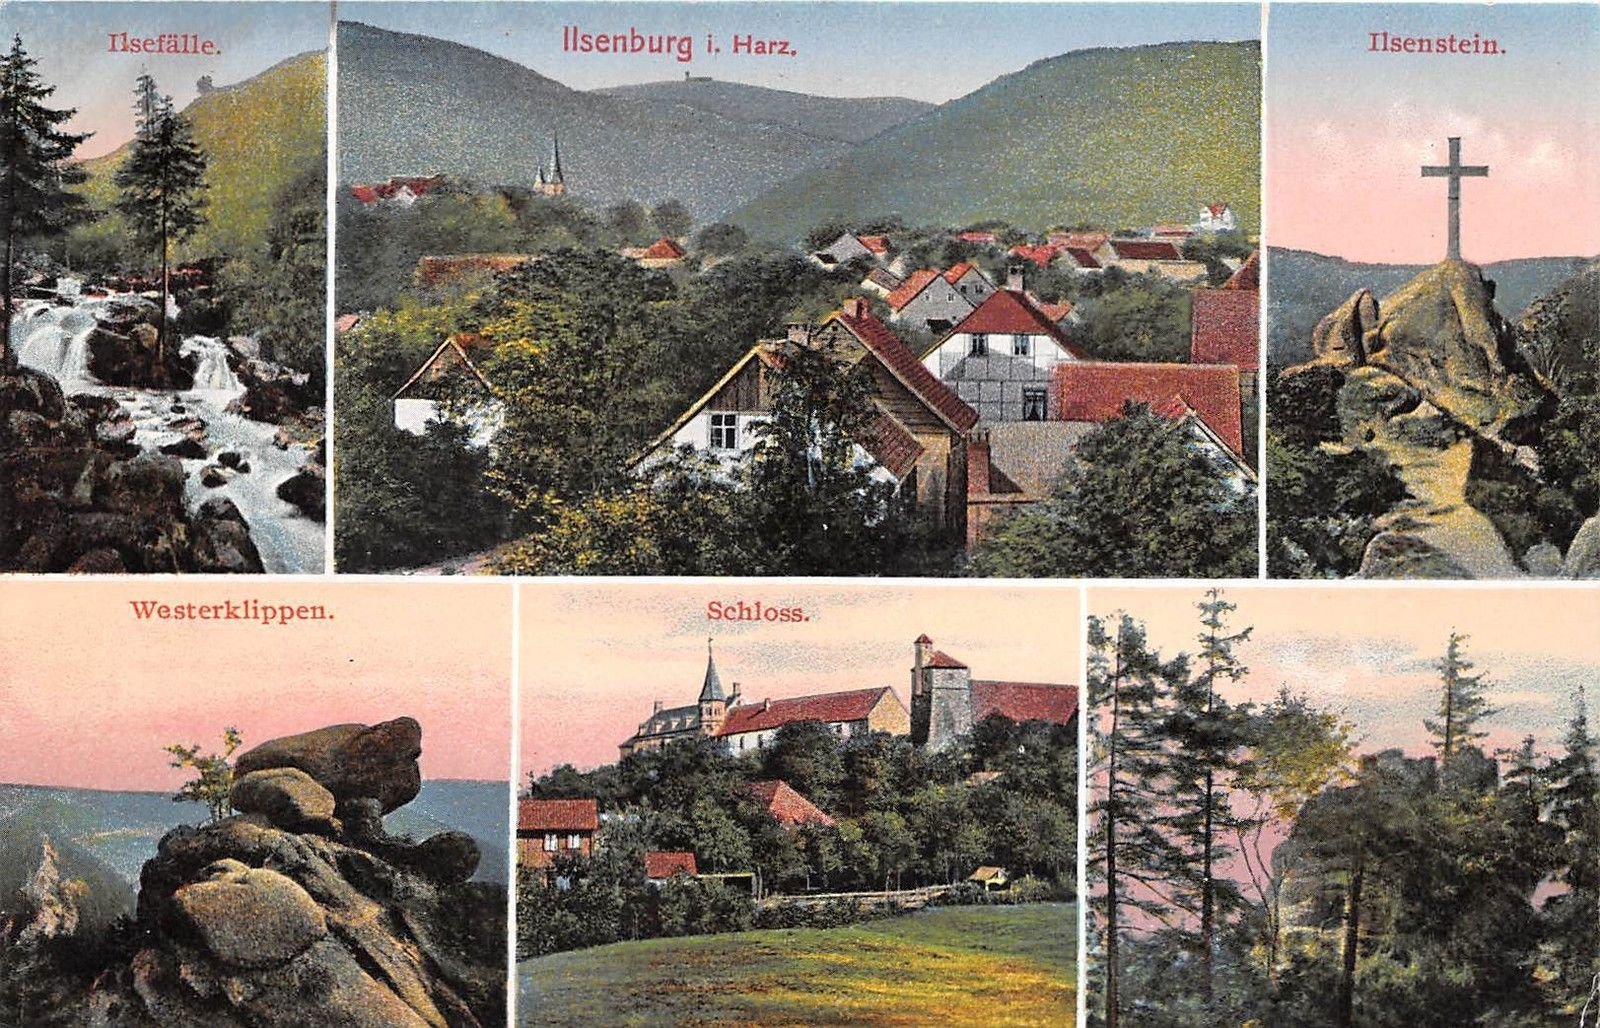 Lady Ilsenburg (Harz)